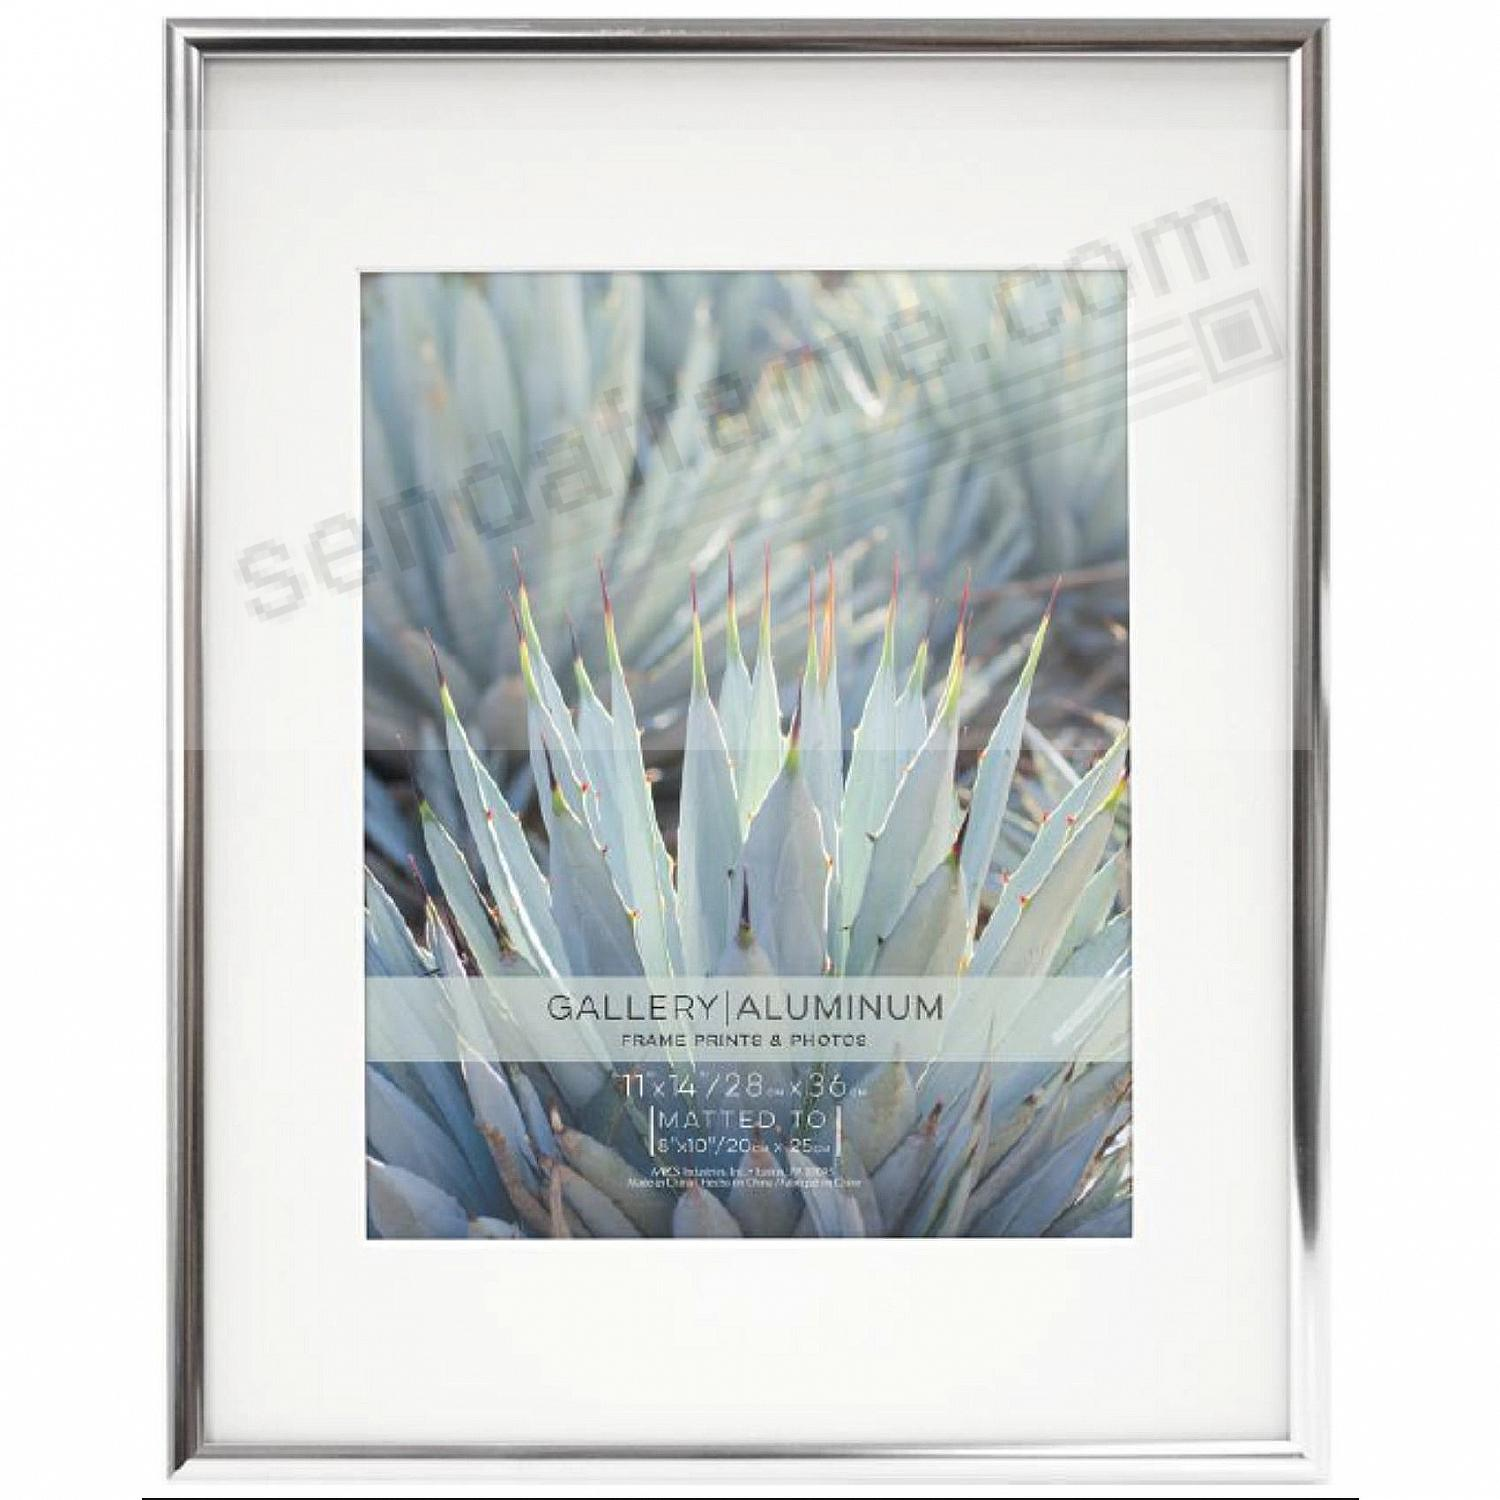 Classic Silver Aluminum POSTER matted 11x14/8x10 frame by MCS ...